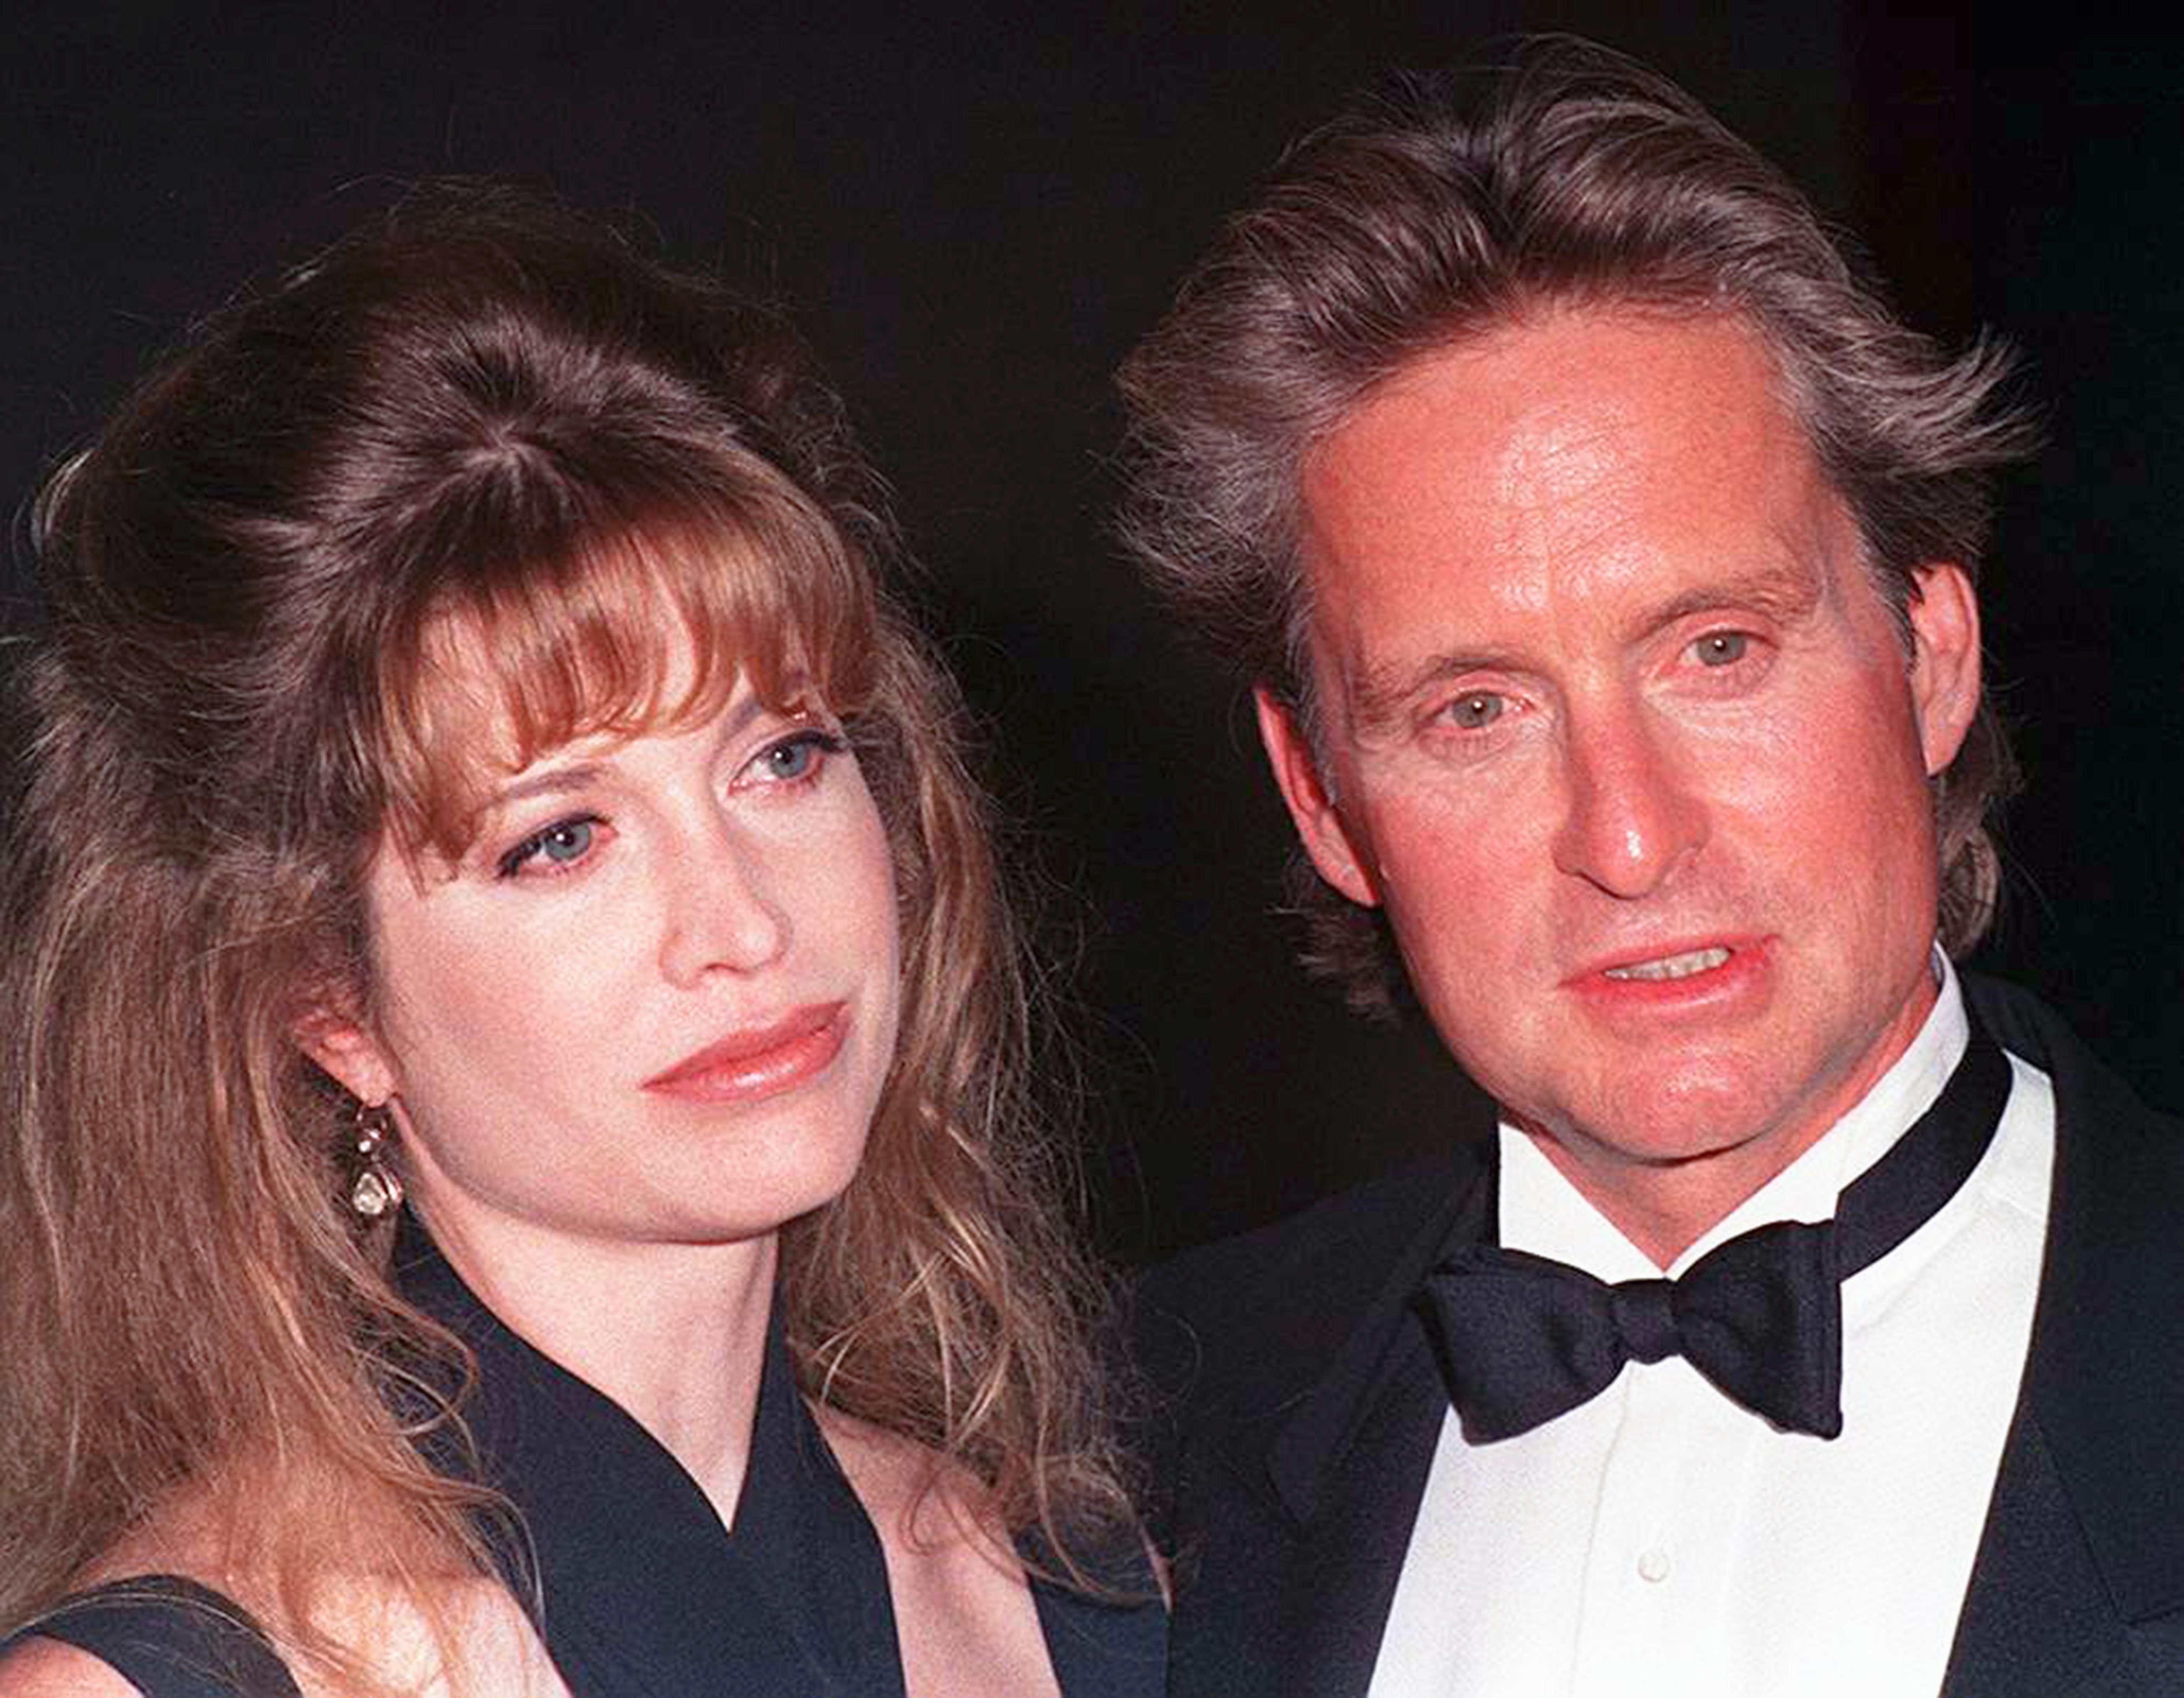 Michael Douglas with his wife Diandra at the American Cinematheque's Eighth Annual Moving Picture Ball in Los Angeles, California, on September 29, 1993. | Source: Getty Images.